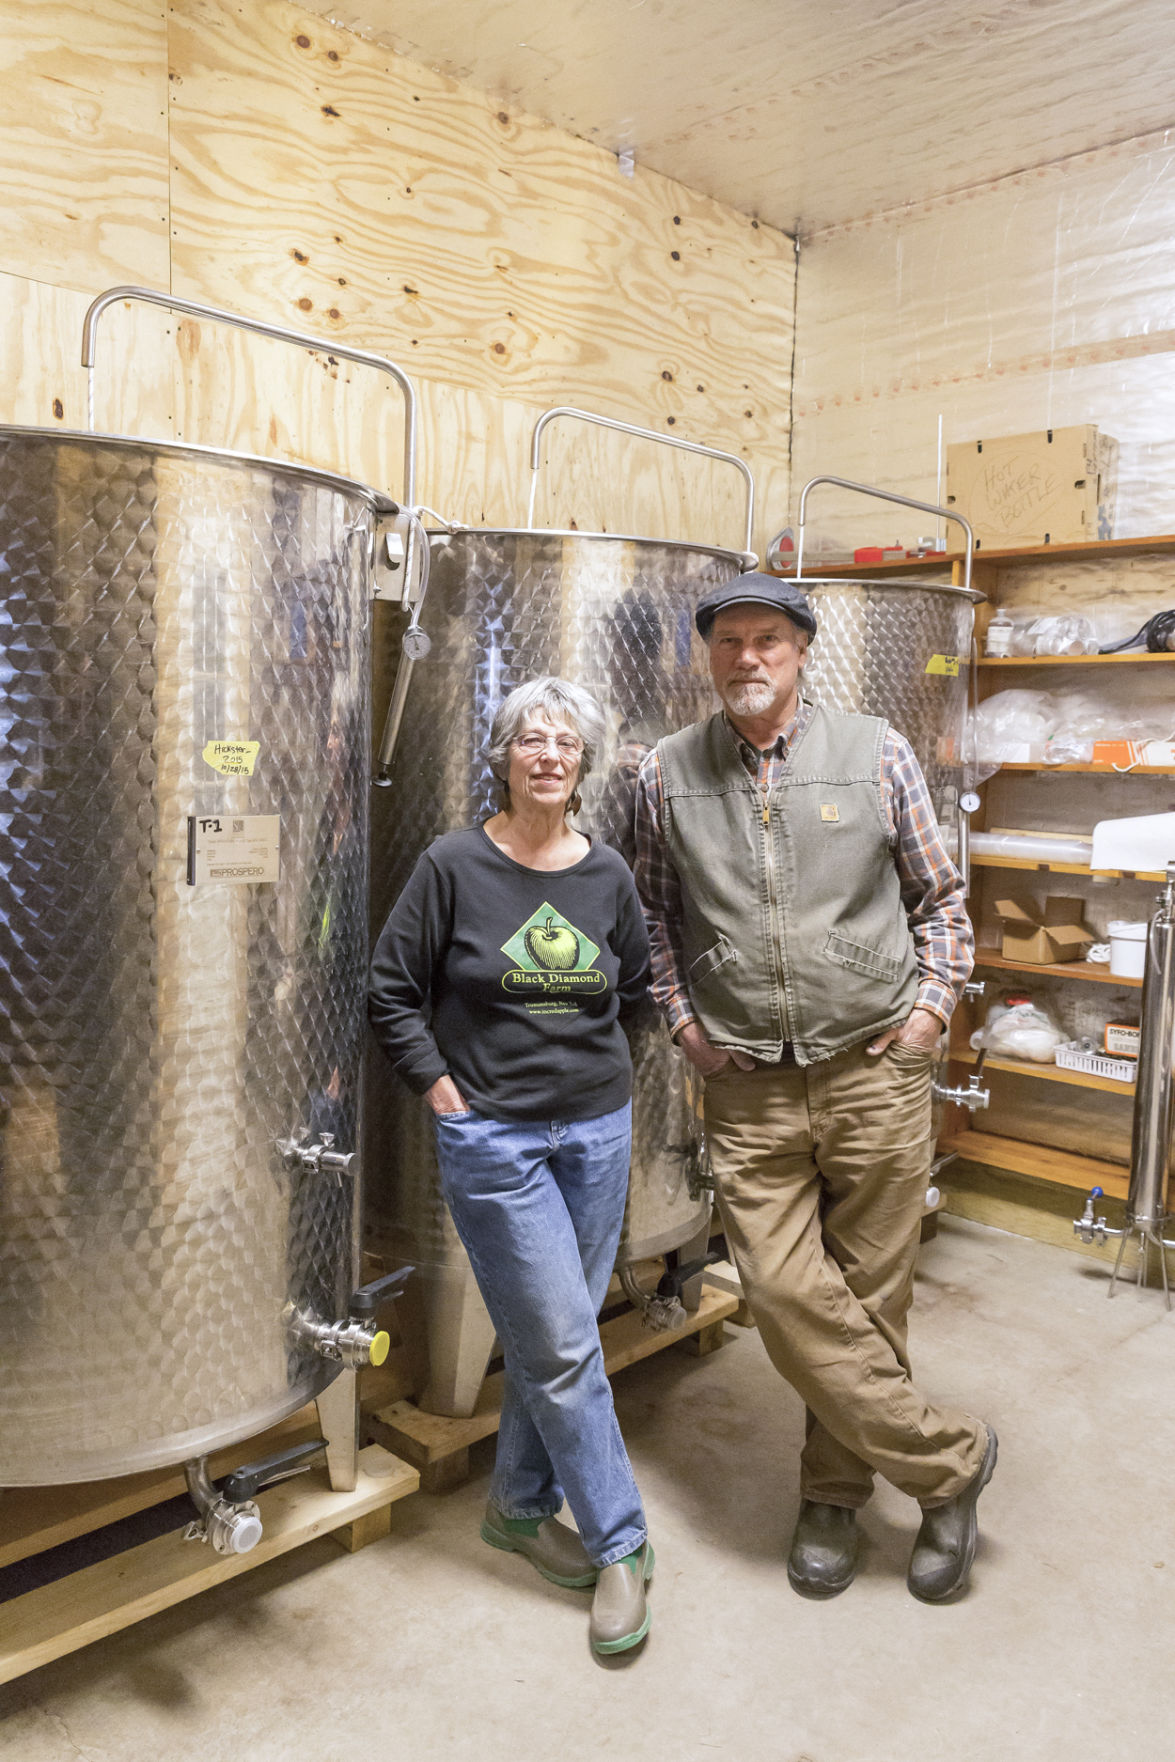 Cidermaking pioneers Jackie and Ian Merwin of Black Diamond Cider in Trumansburg